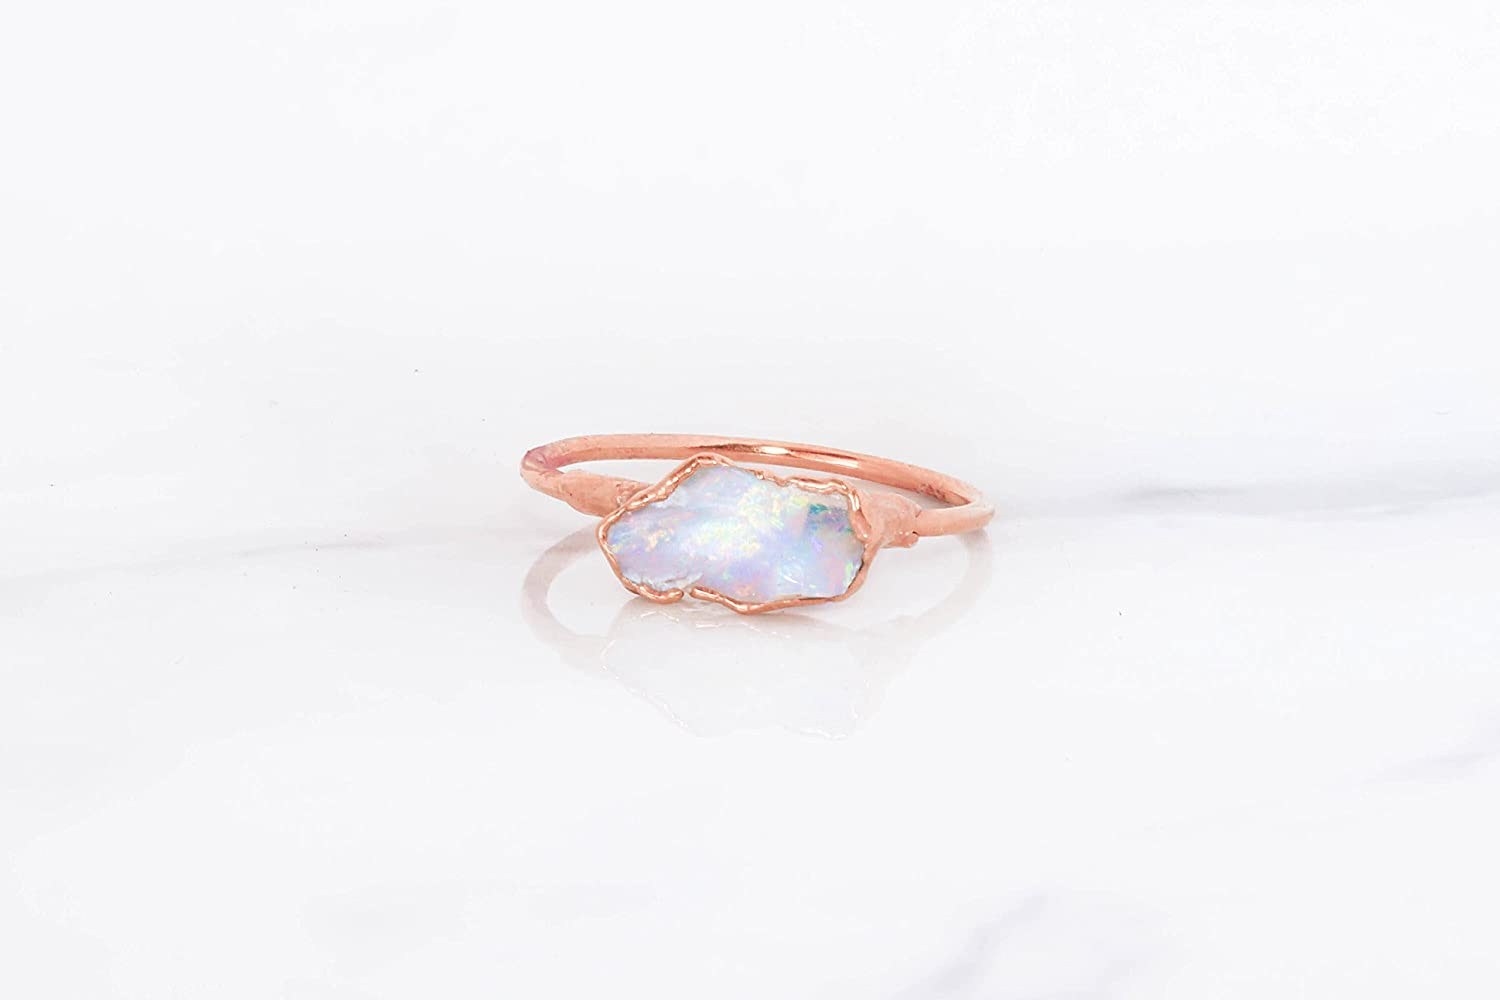 aba54cee1 Amazon.com: Raw Opal Ring, Size 8, Rose Gold, October Birthstone Stacking  Ring: Handmade